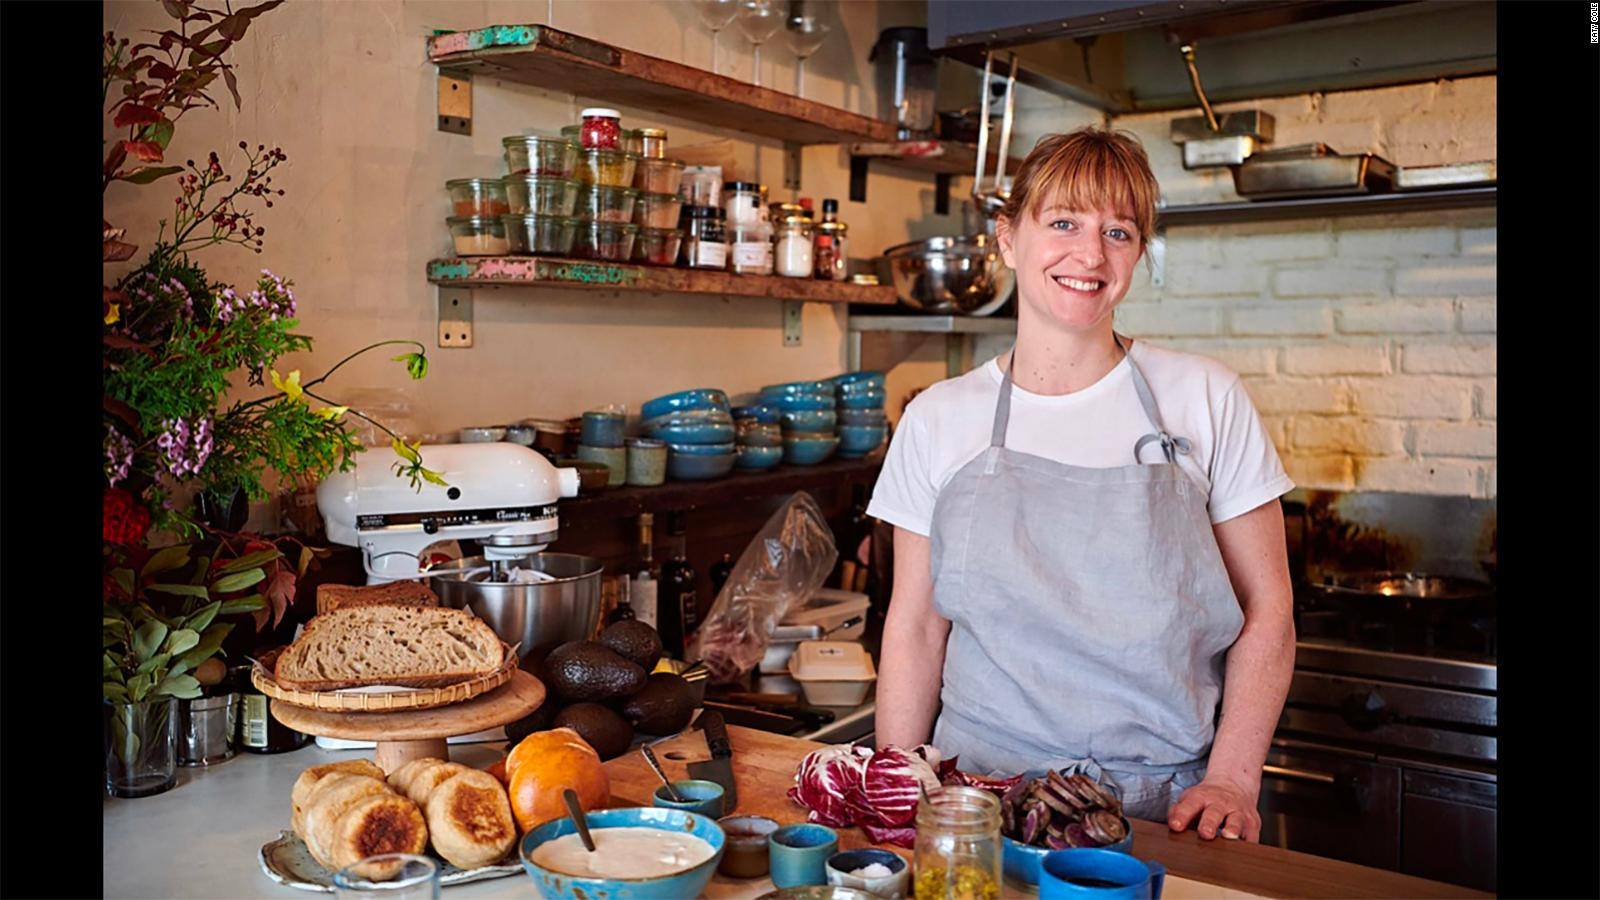 Best female chefs you should get to know on International Women's Day | CNN Travel